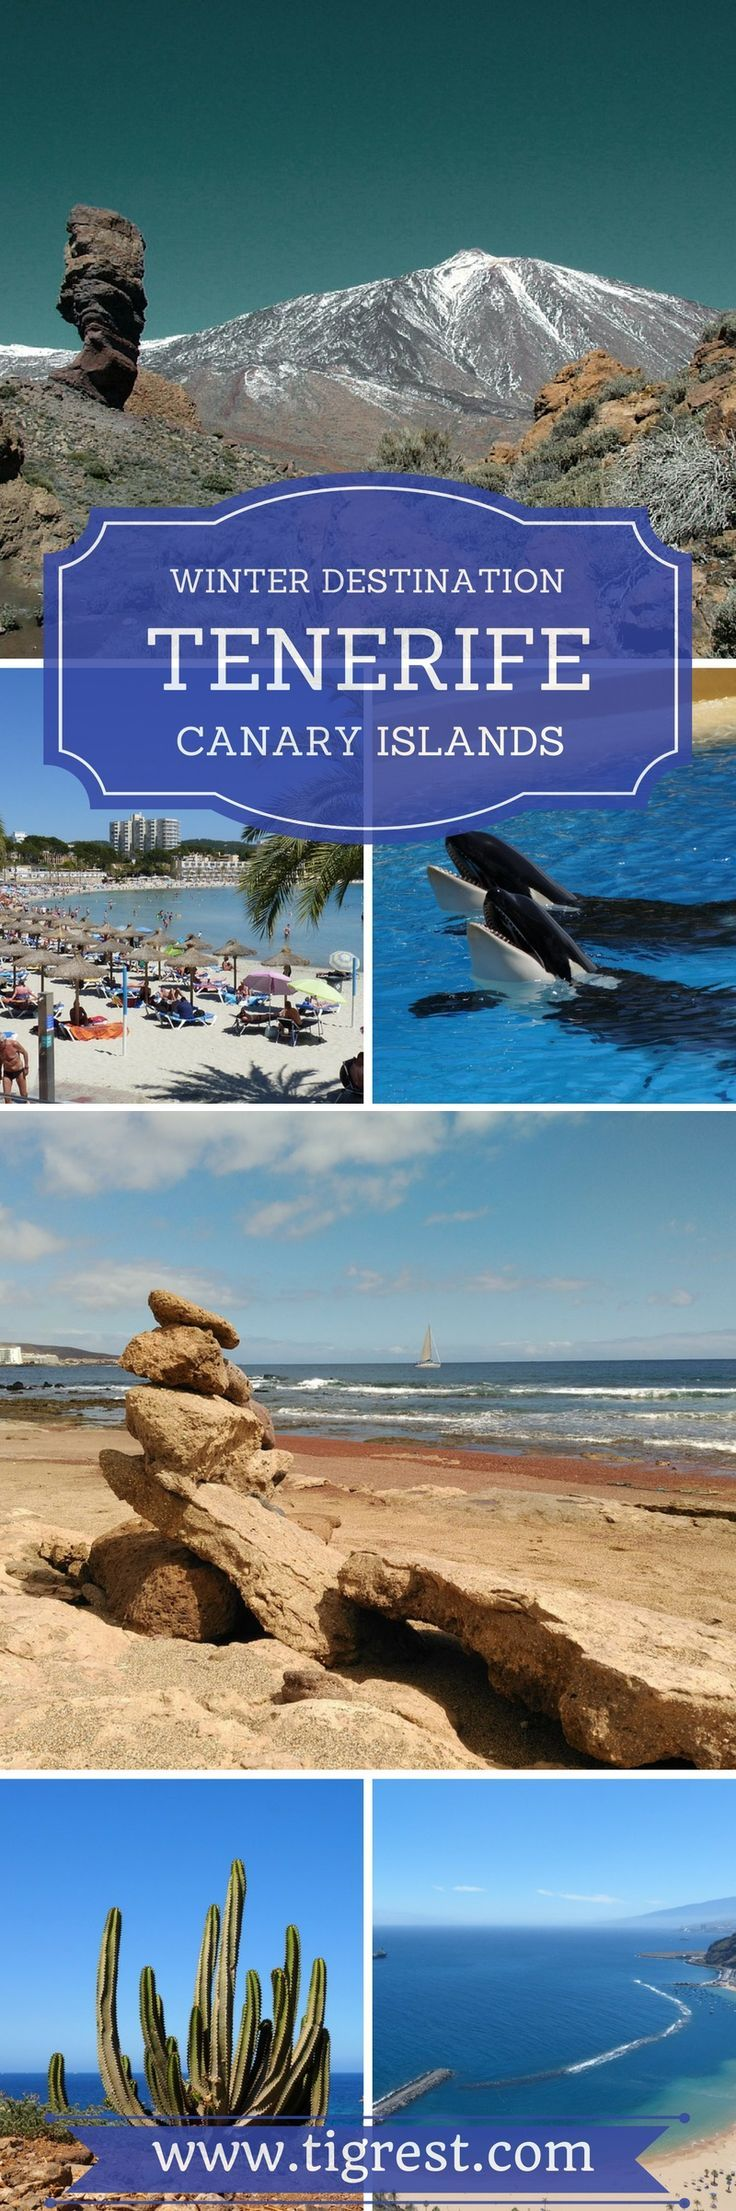 Tenerife holidays - best destination with year round sunny weather. It's popular among tourists and has a lot to offer